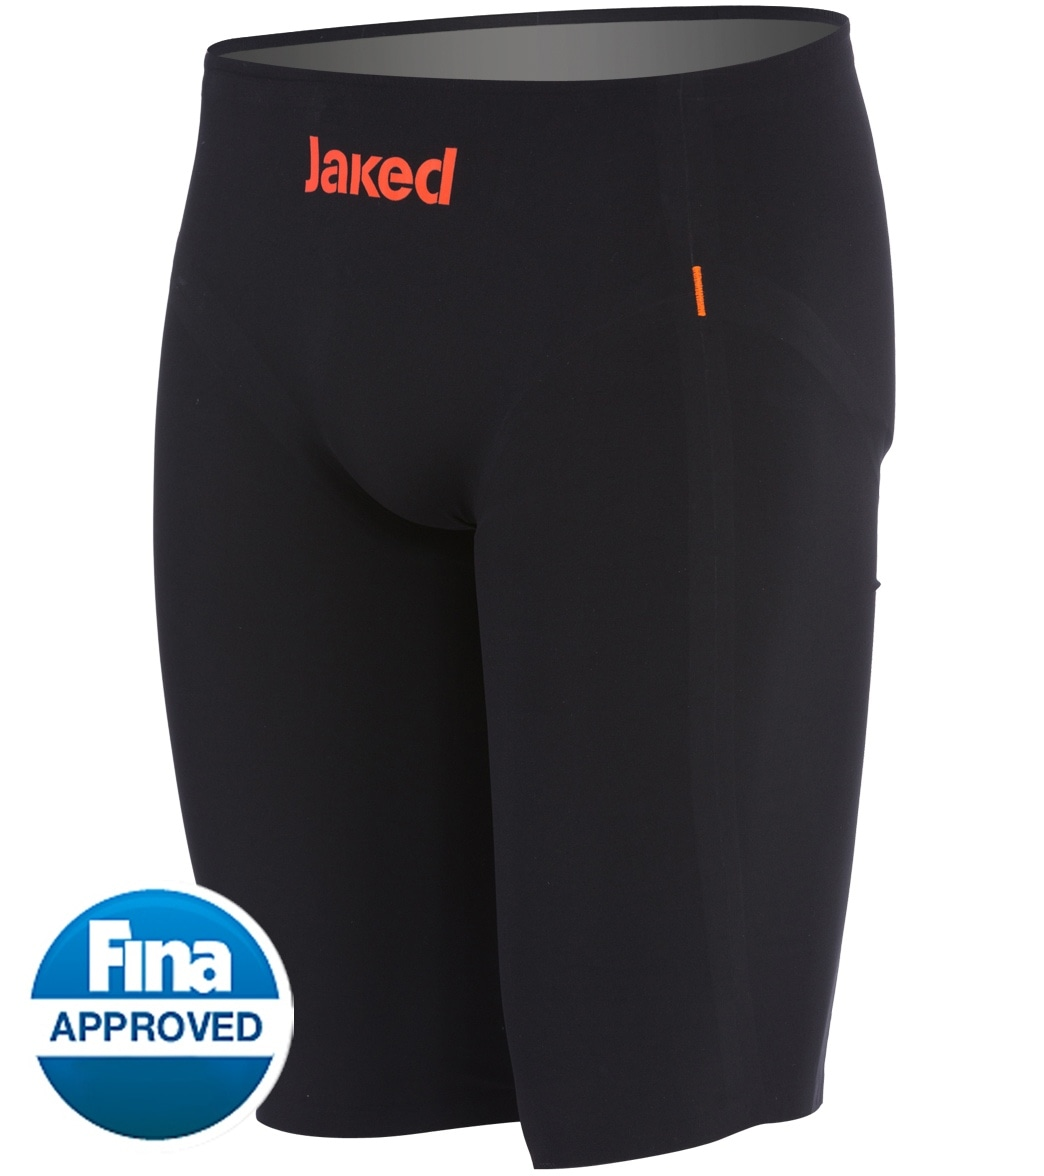 Jaked JKeel Men's Jammer Tech Suit Swimsuit